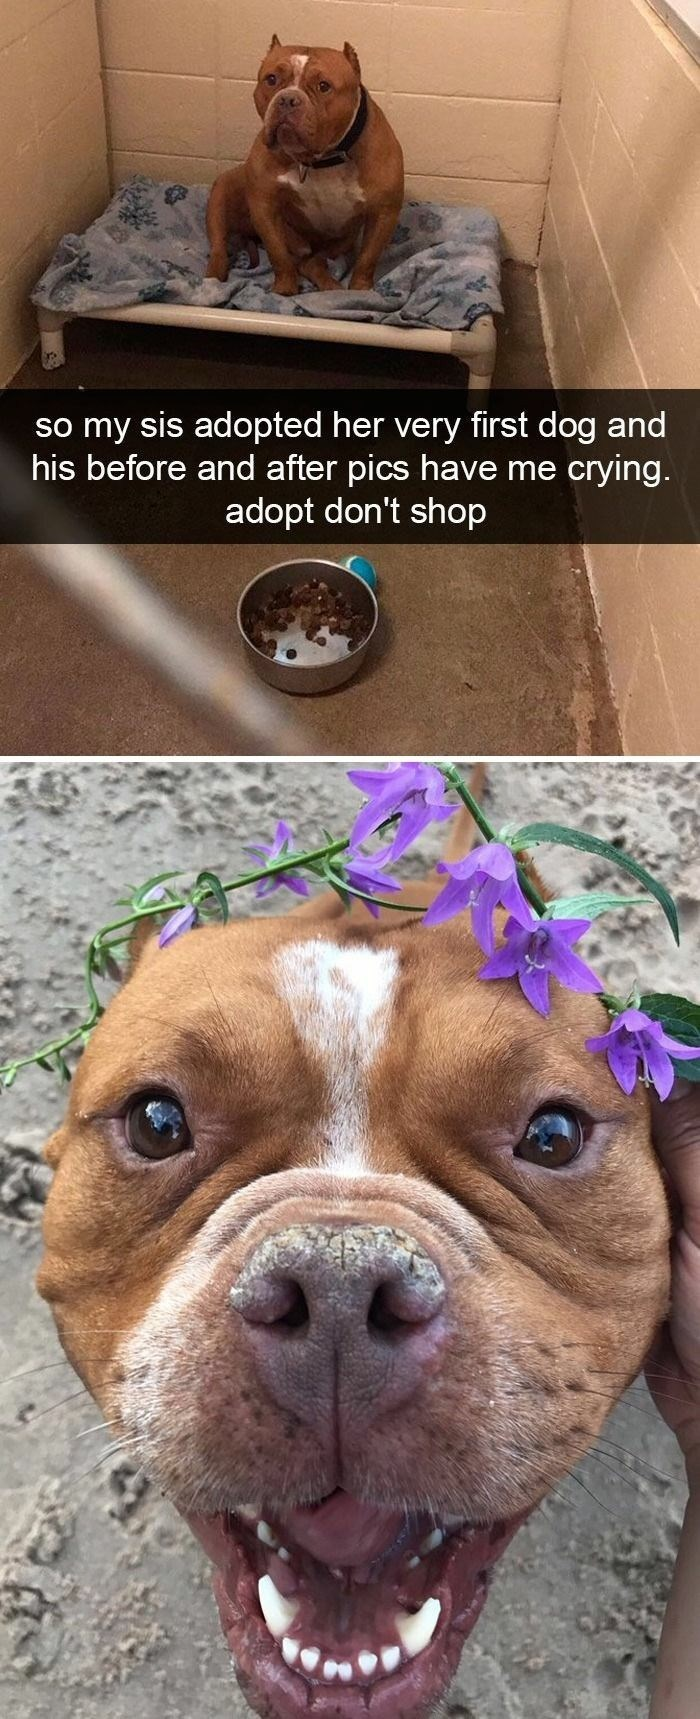 Dog - so my sis adopted her very first dog and his before and after pics have me crying. adopt don't shop